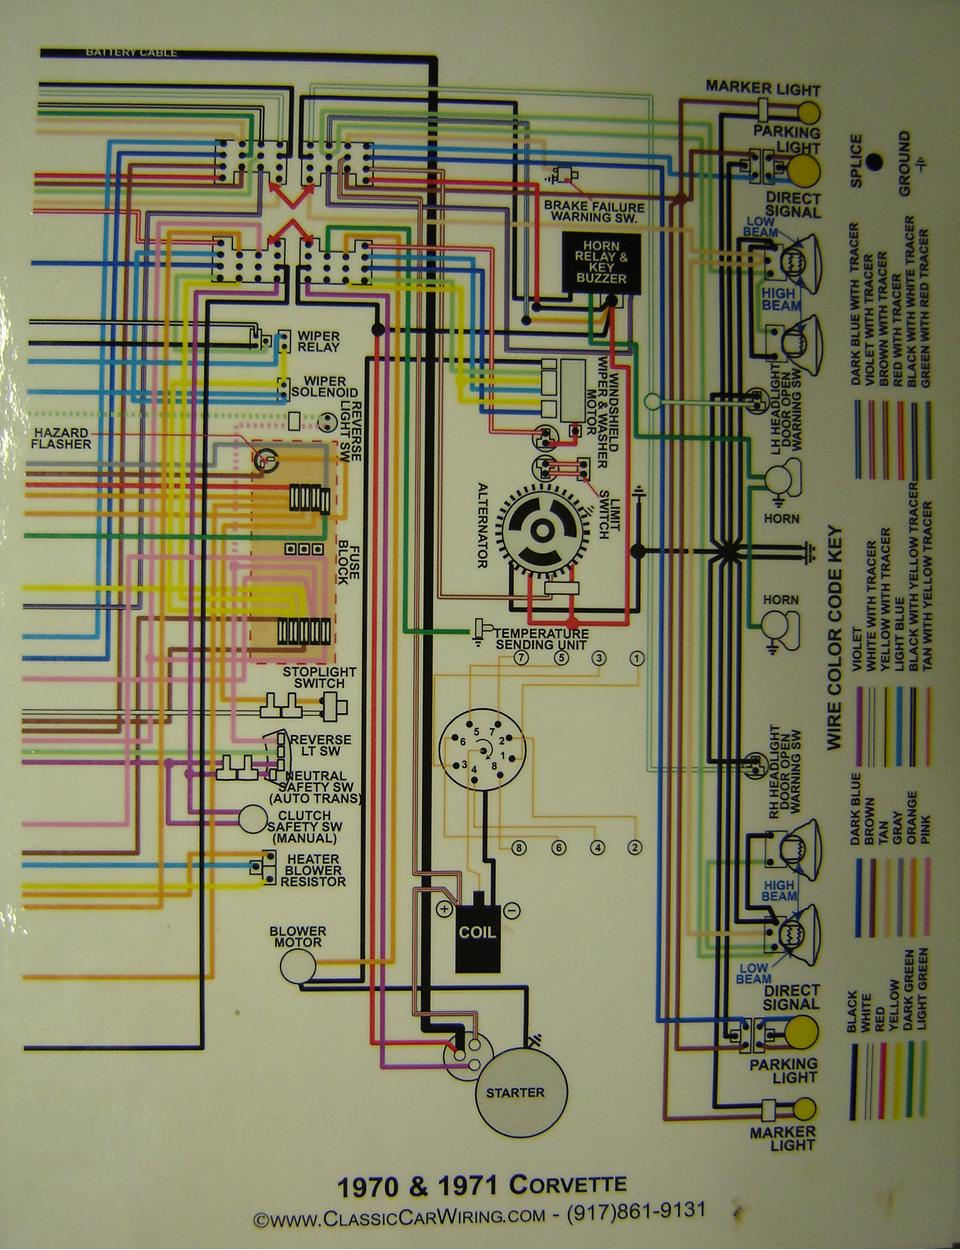 1969 C10 Wiring Diagram Ac - Wiring Diagram Rows  C Wiring Diagram on 84 corvette wiring diagram, 84 k2500 wiring diagram, 84 camaro wiring diagram, 84 caprice wiring diagram, 84 k5 blazer wiring diagram, 84 cavalier wiring diagram, 84 k20 wiring diagram,